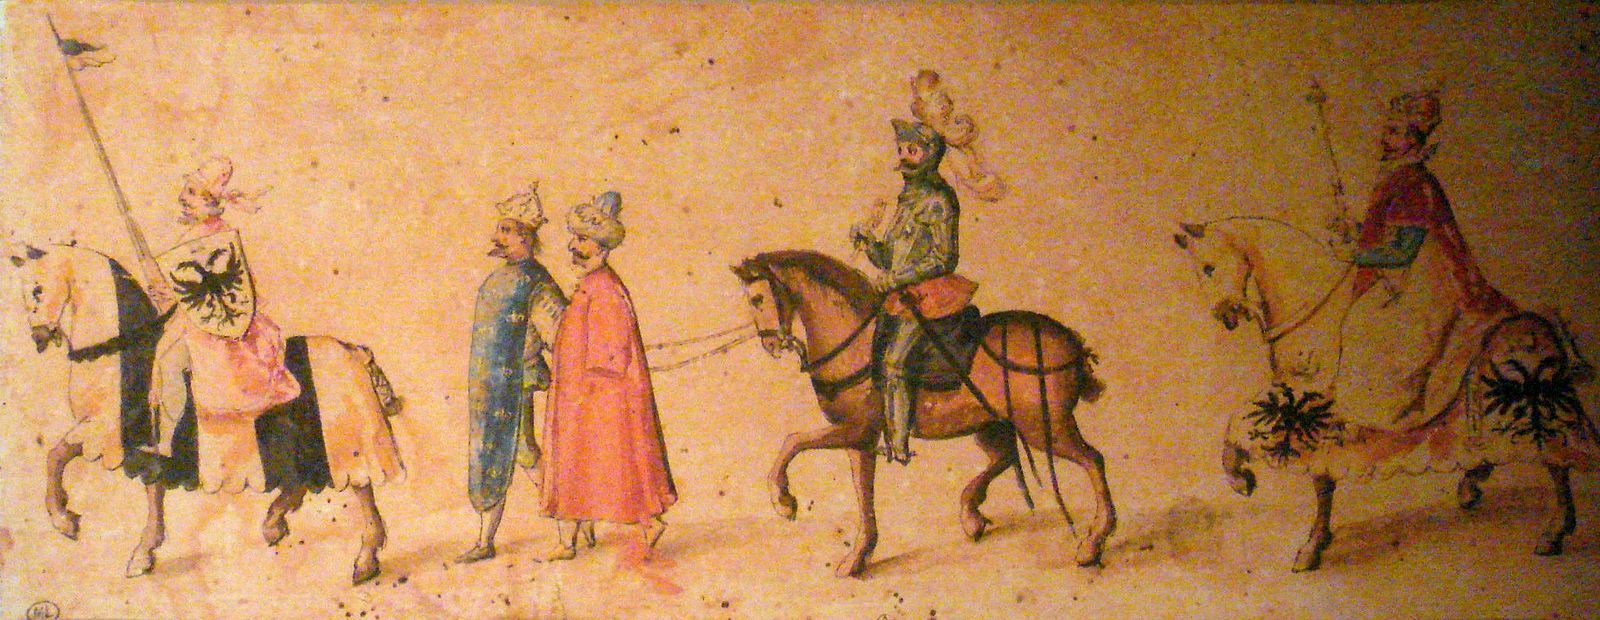 1525.The Emperor conducting the king of France and the Sultan as captives bound together Early 17th century charicature. Musee Ecouen.